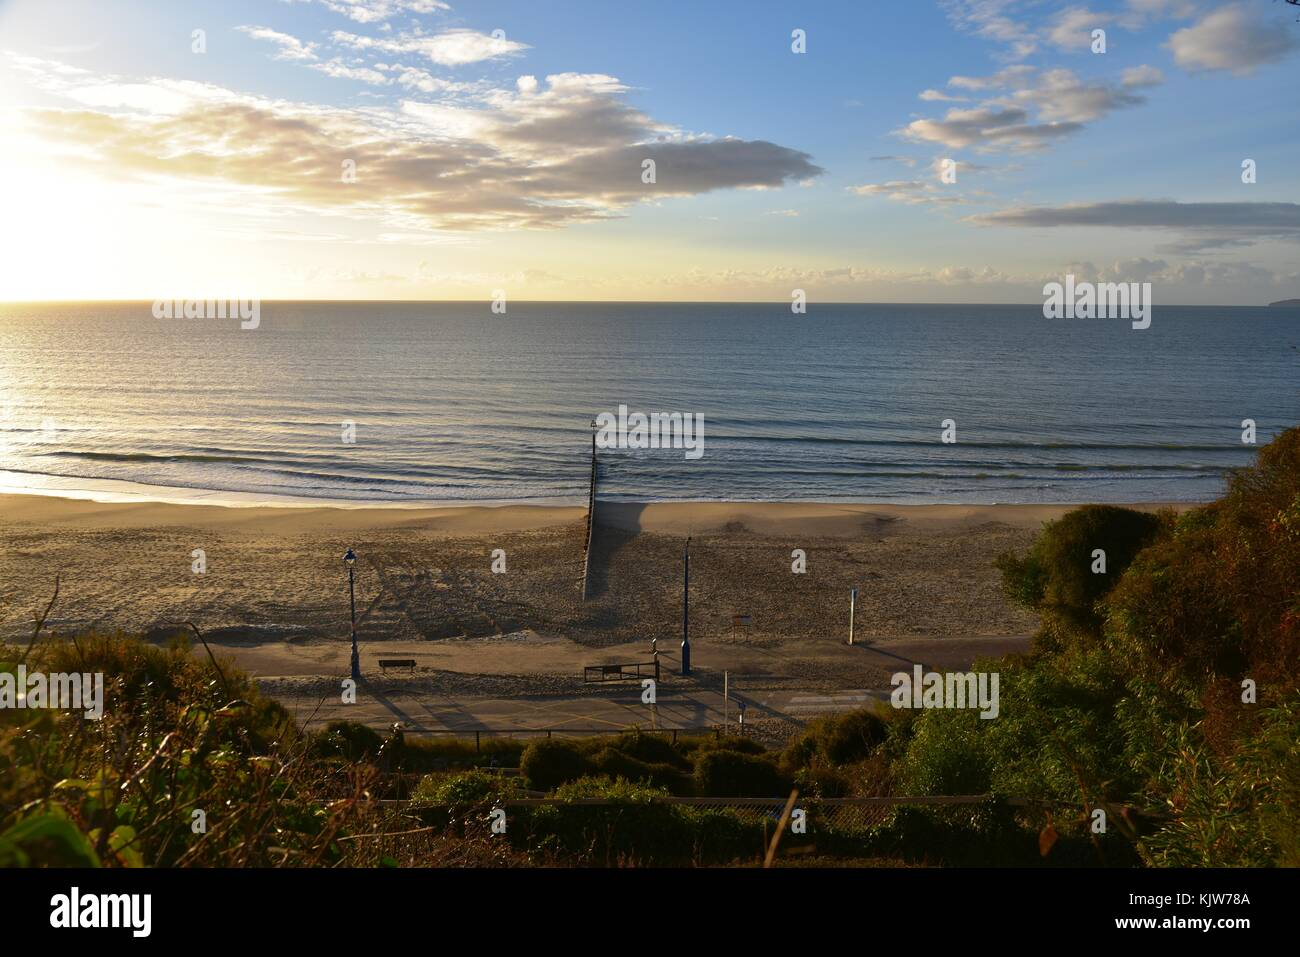 26th November, 2017 Bournemouth, UK A beautiful view of Bournemouth pier and landscape on a sunny autumn day.26th - Stock Image